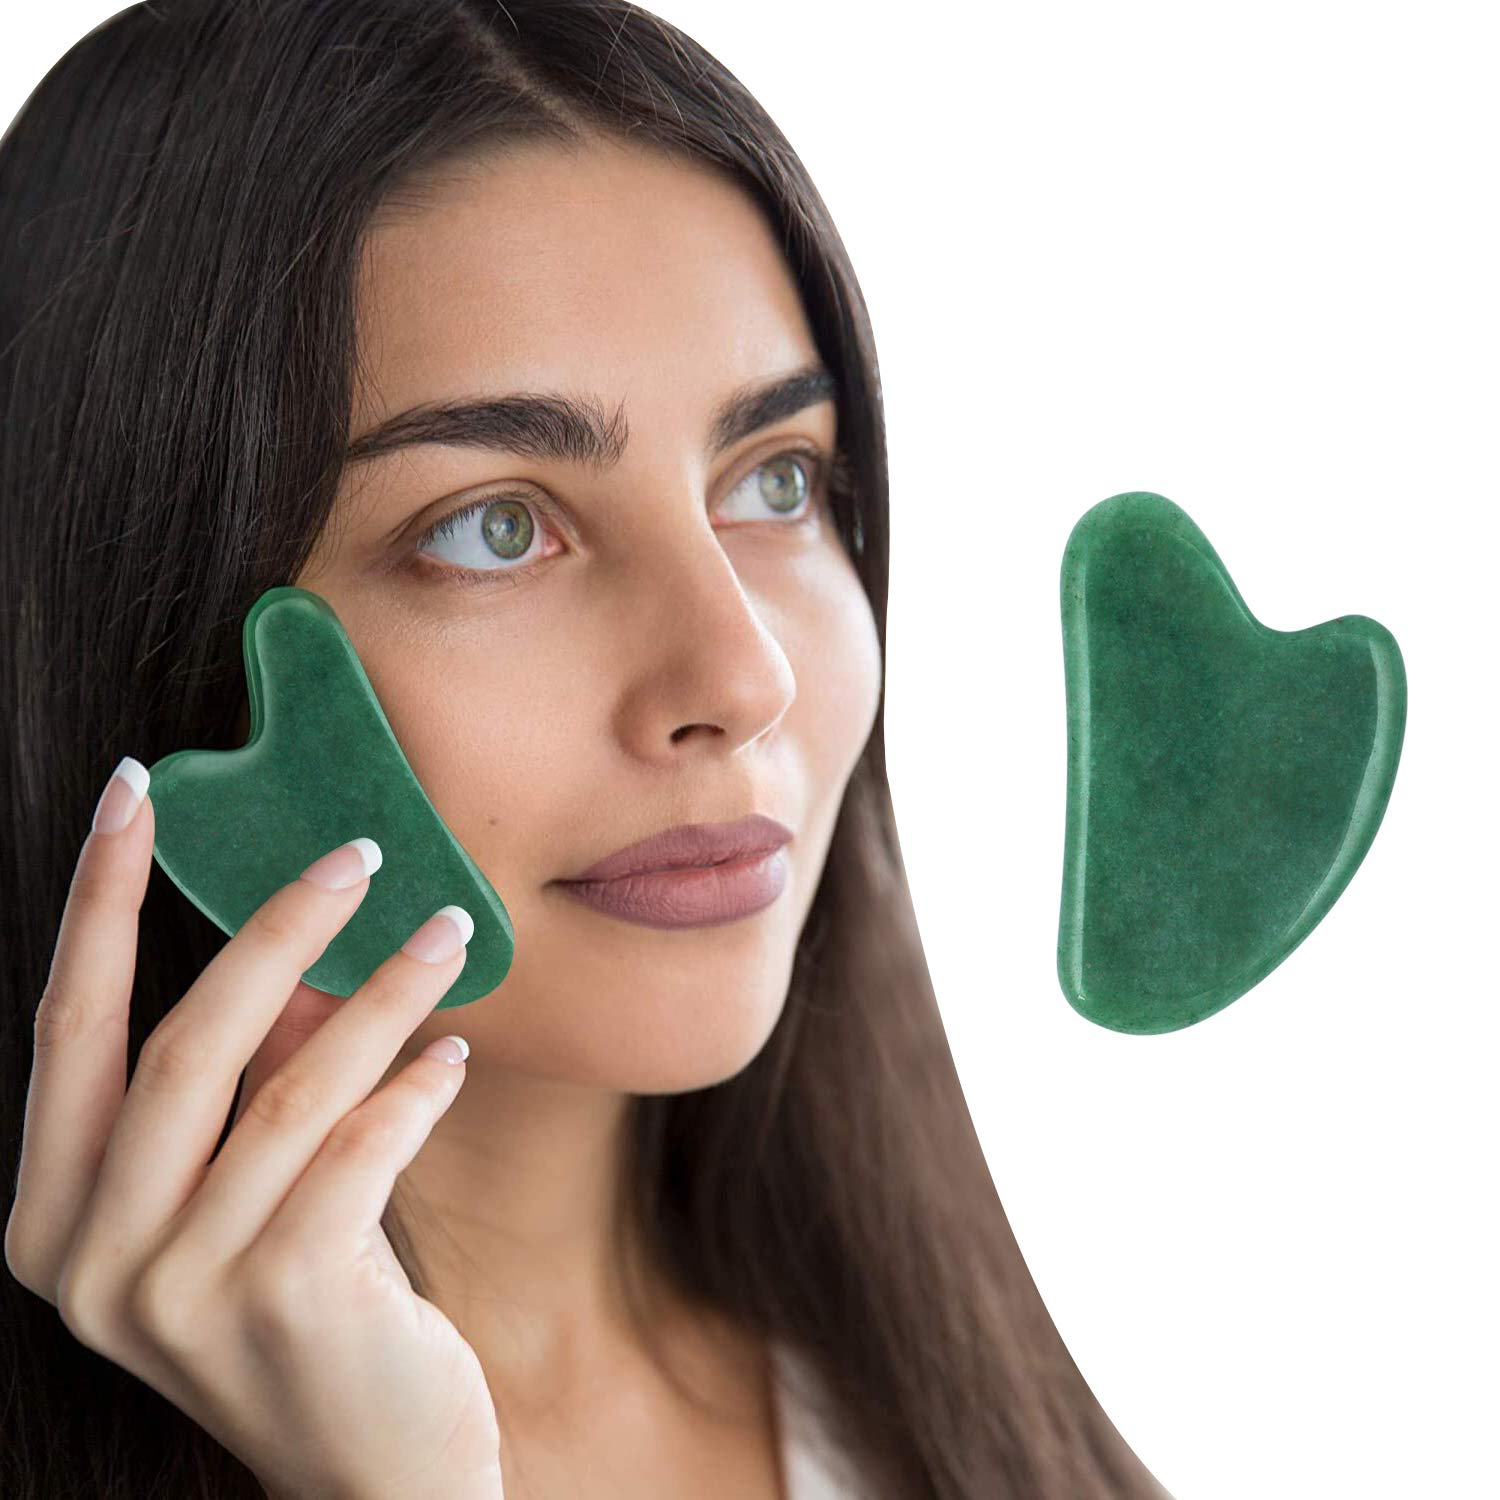 Peora Aikon Green Jade Gua Sha Stone Handcrafted Natural Himalayan Healing  Stone Gua Sha Face Massage Tool for Stress Relief and Anti-Aging Scraping  Facial Massager for Acupuncture Trigger Point Therapy : Amazon.in: